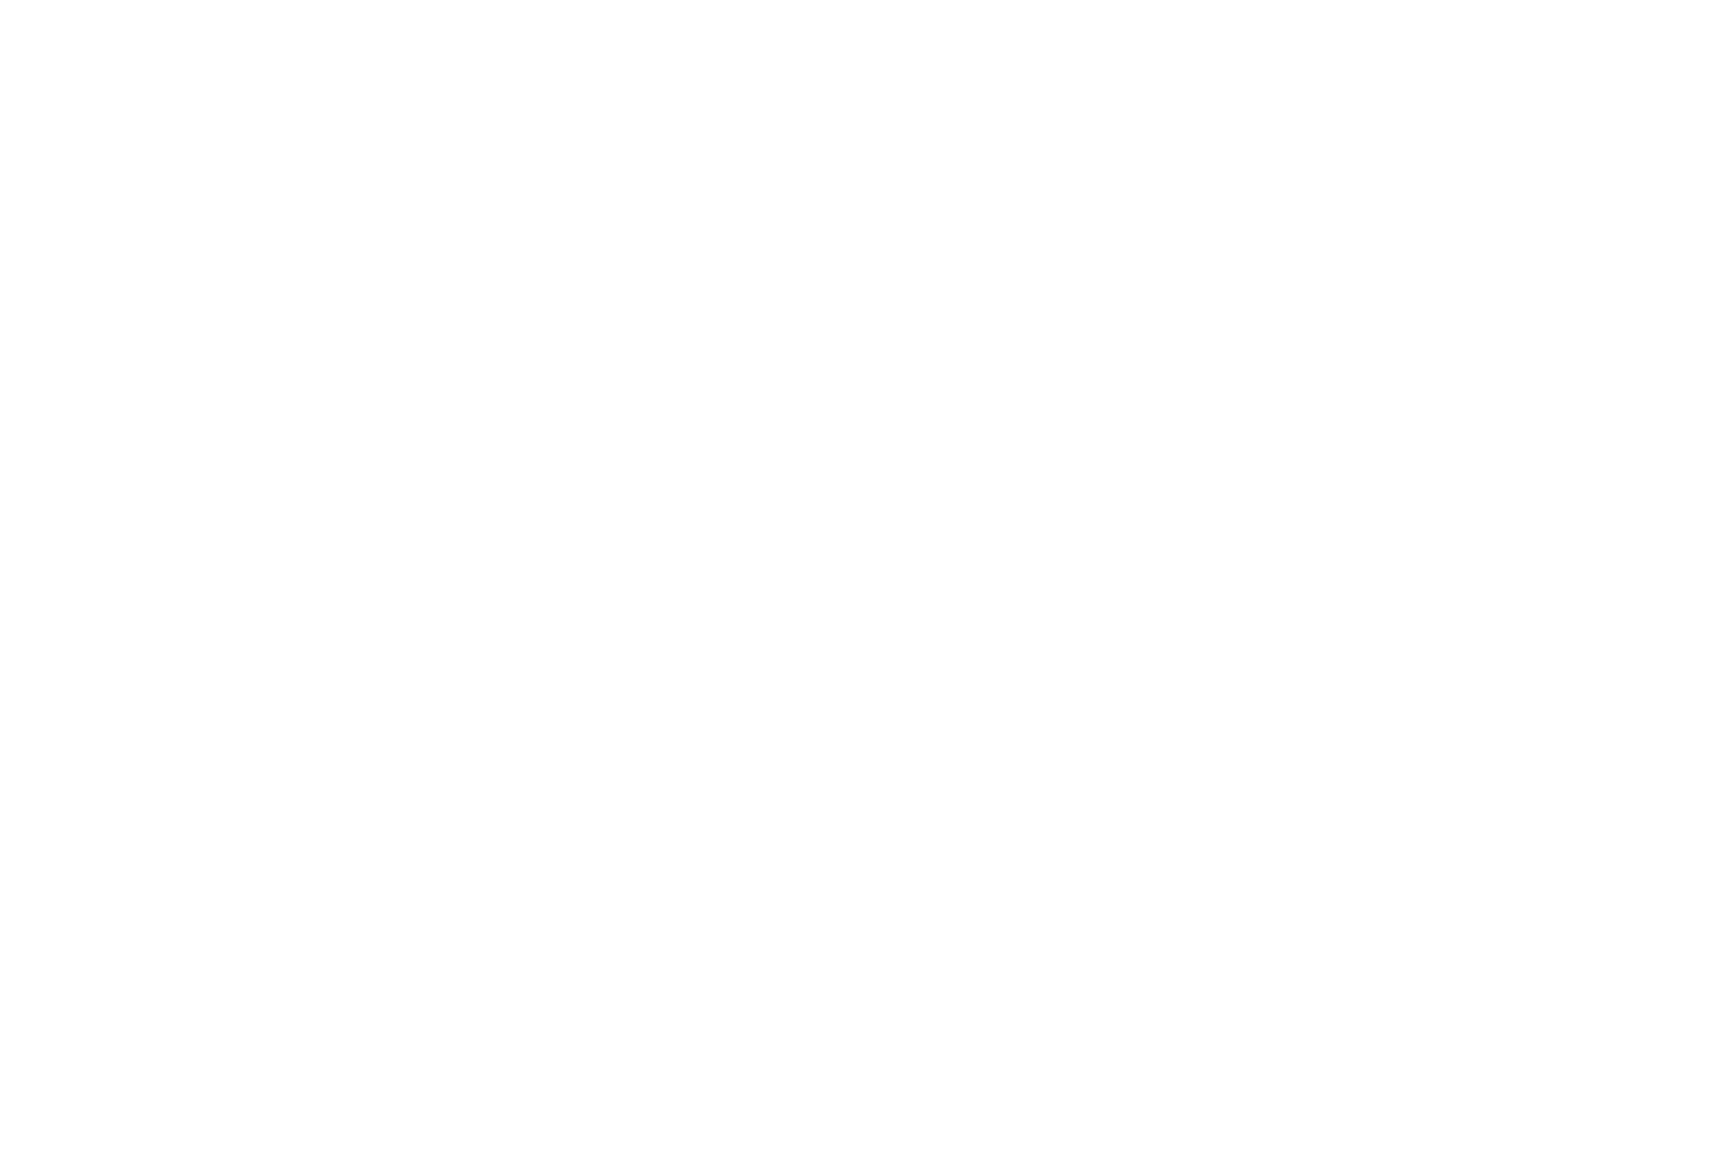 OFFICIAL SELECTION   Bridgslaughter Horror Film Festival   Bridgwater Magazine   2019 Black